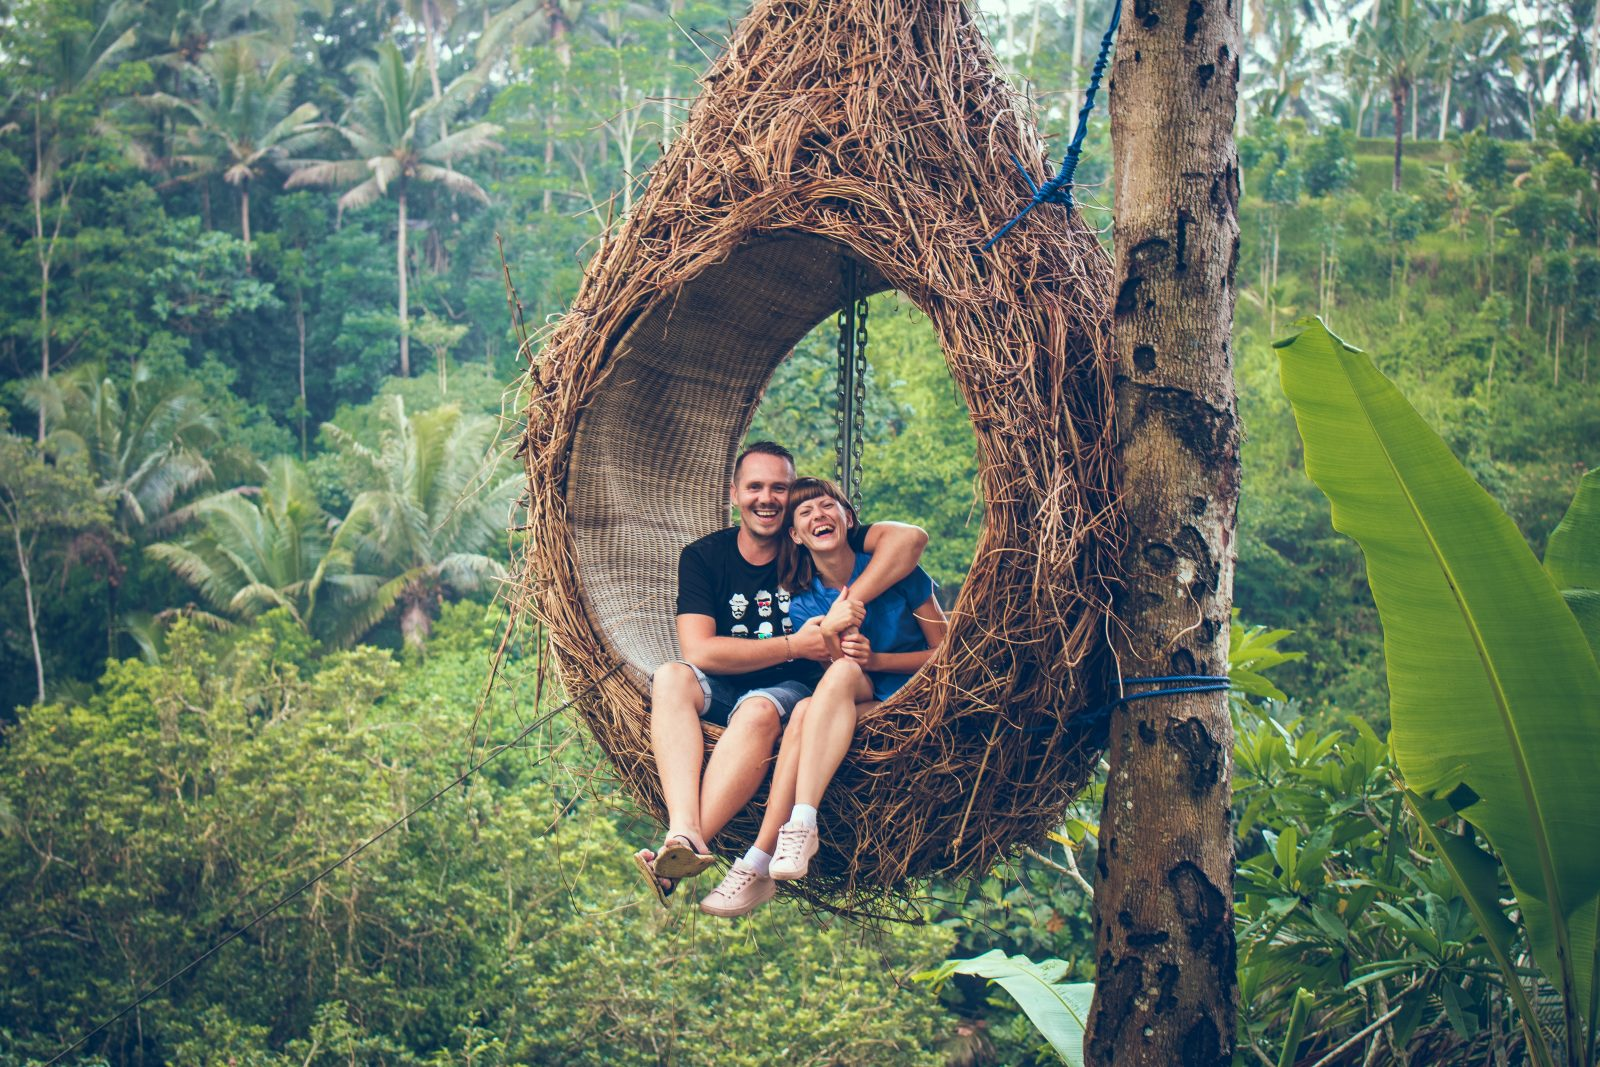 Couple on famous Ubud swing in Bali